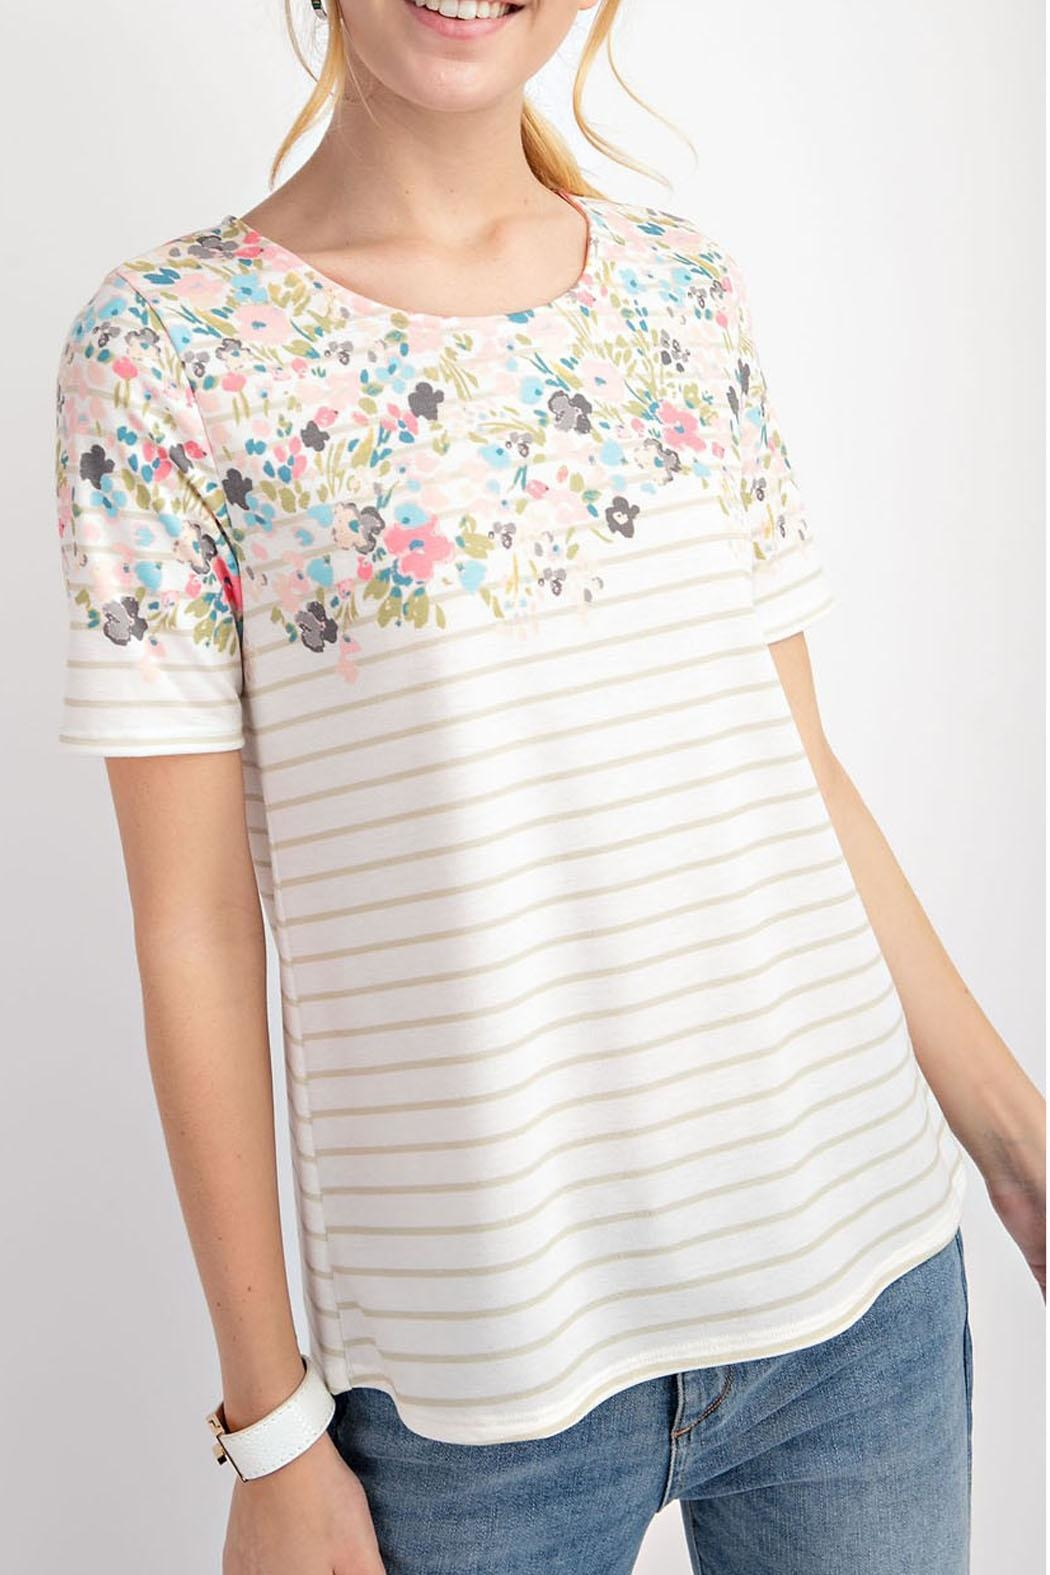 12pm by Mon Ami Floral Taupe Top - Main Image